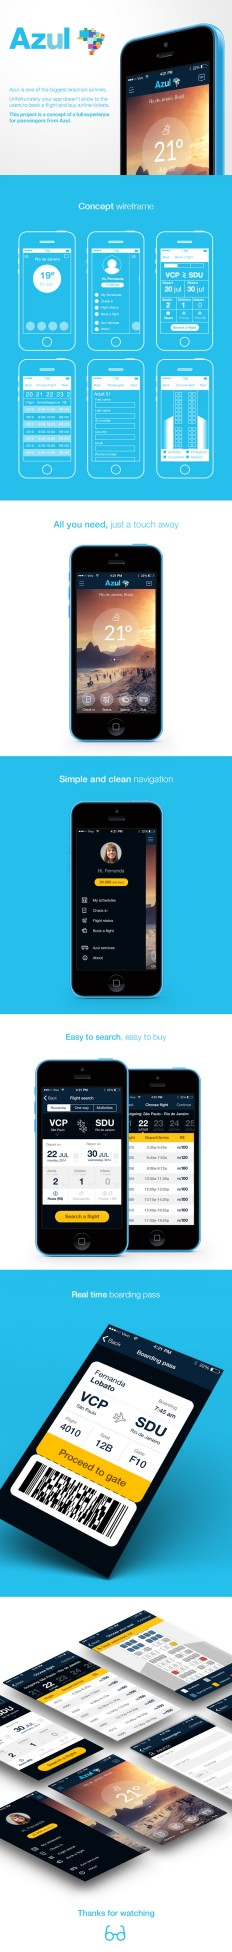 Azul Airlines – Iphone App on Inspirationde